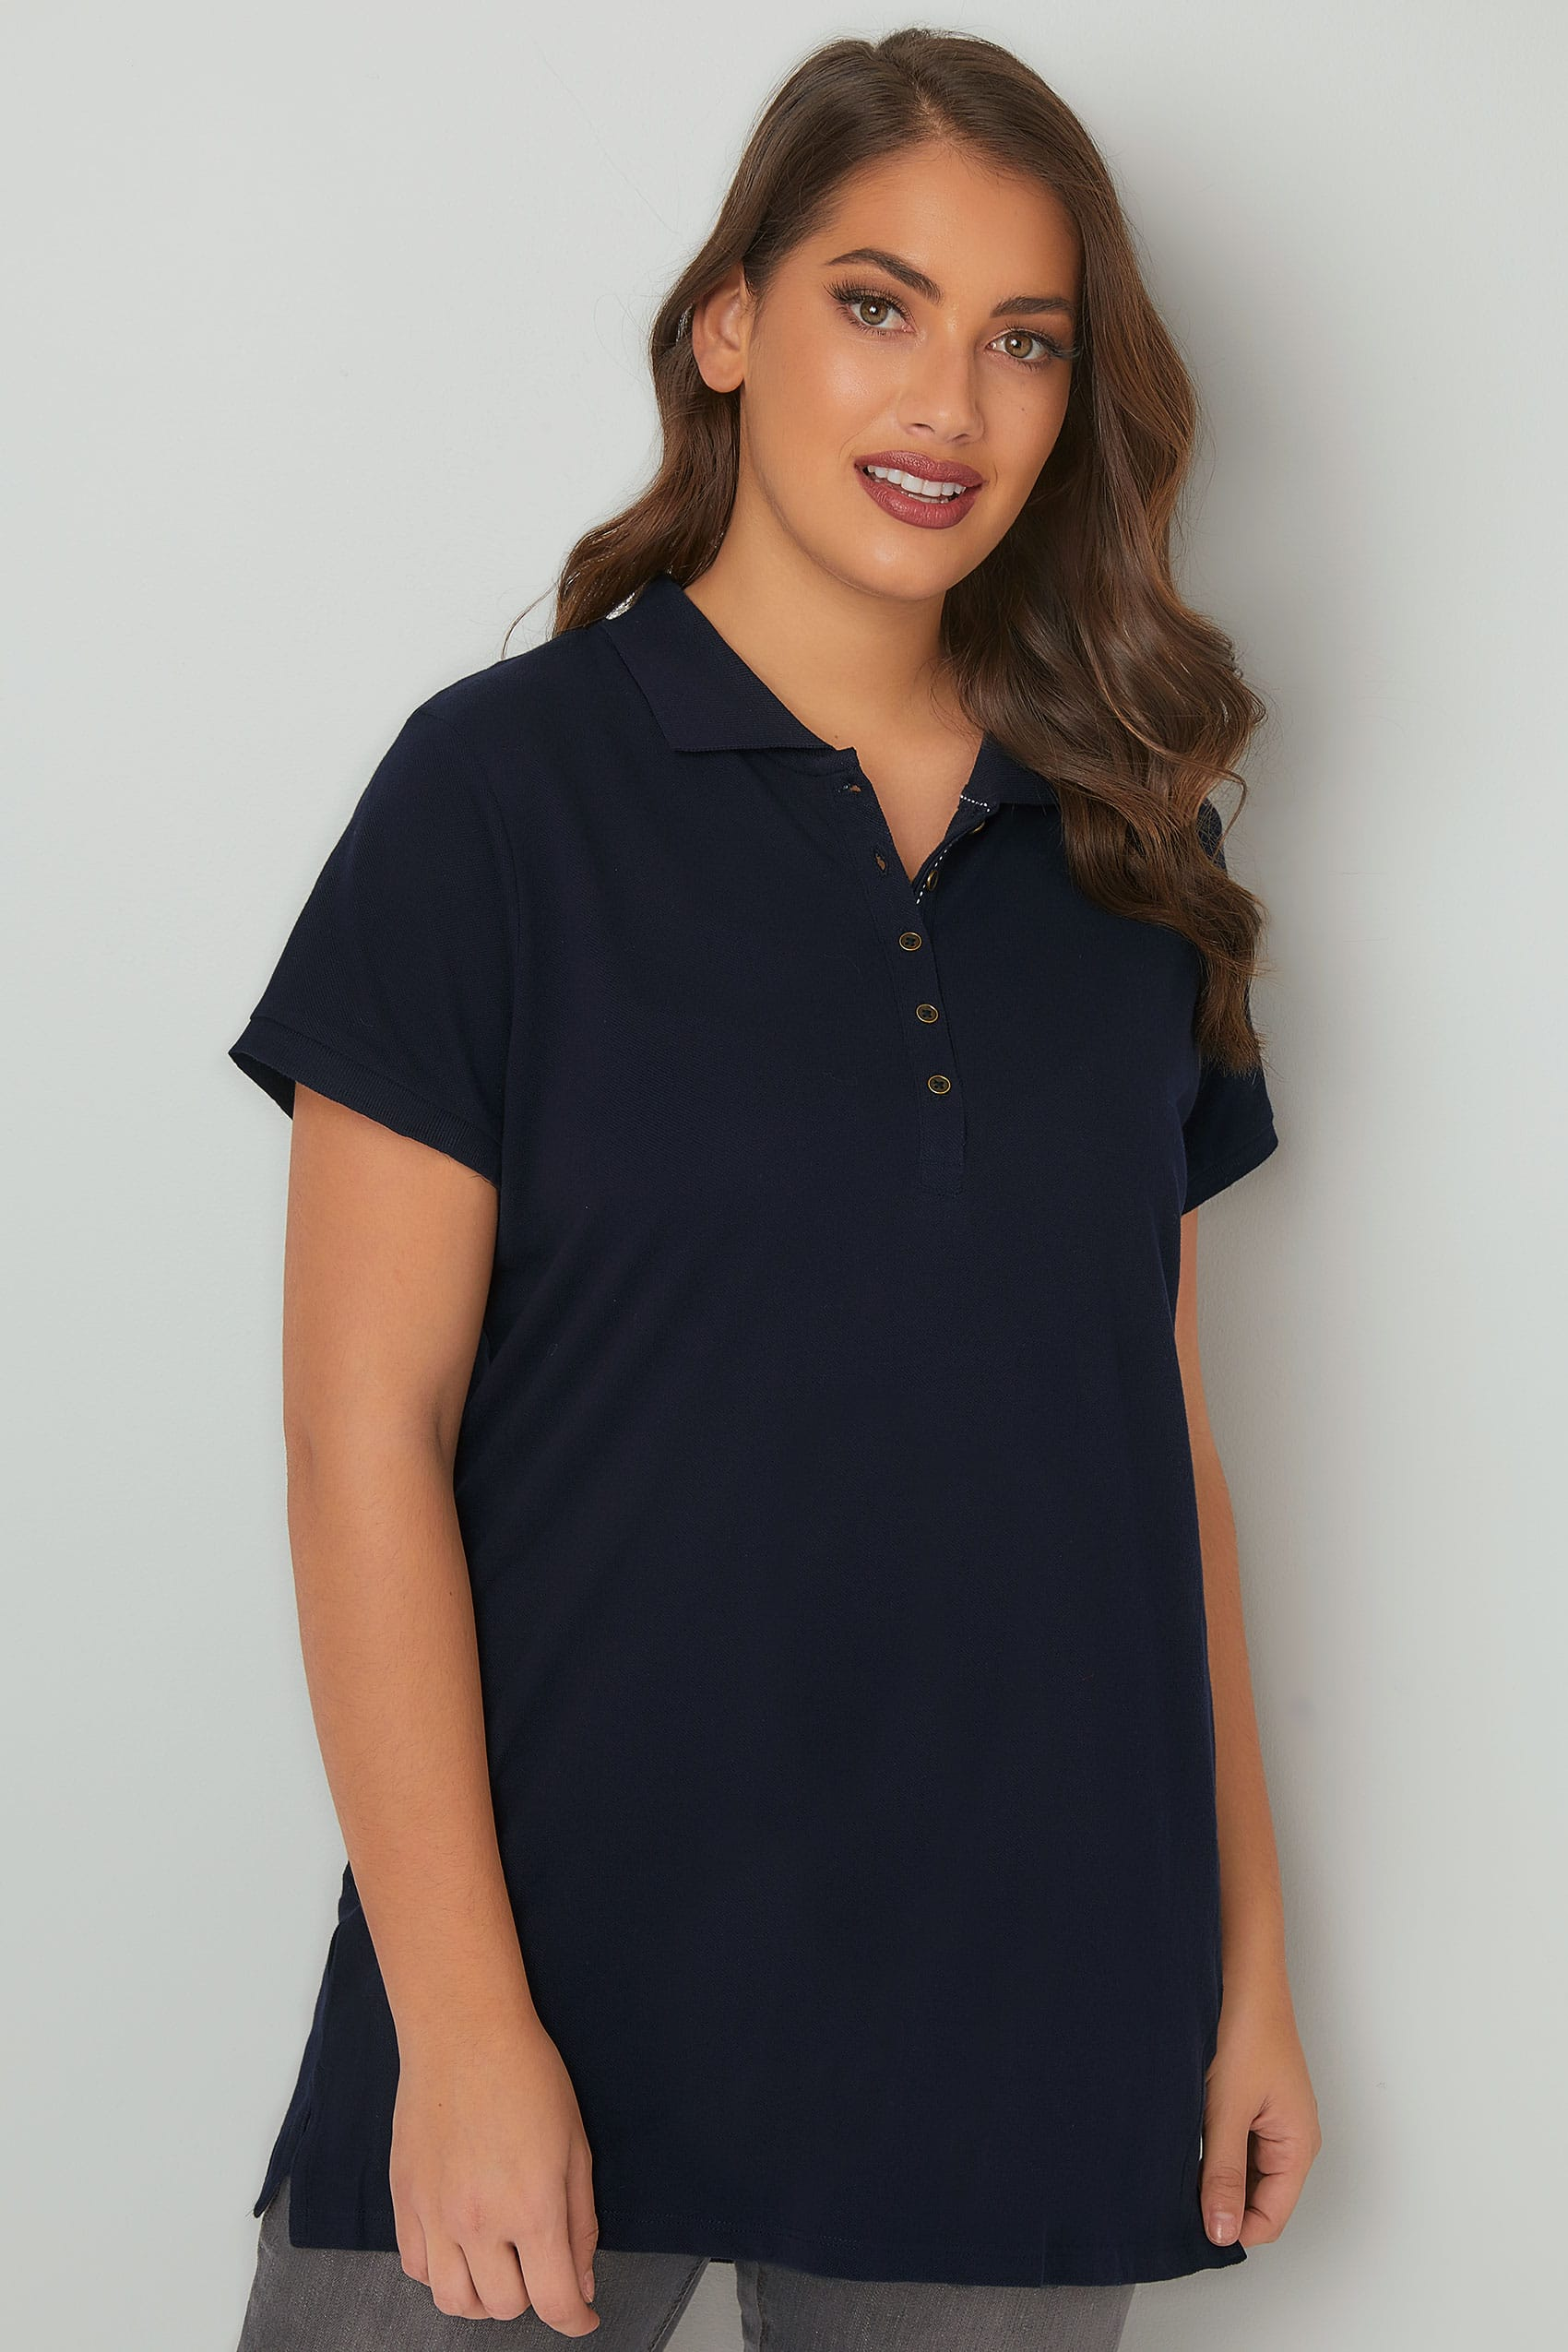 Navy button up polo shirt plus size 16 to 36 - Div class background color ...